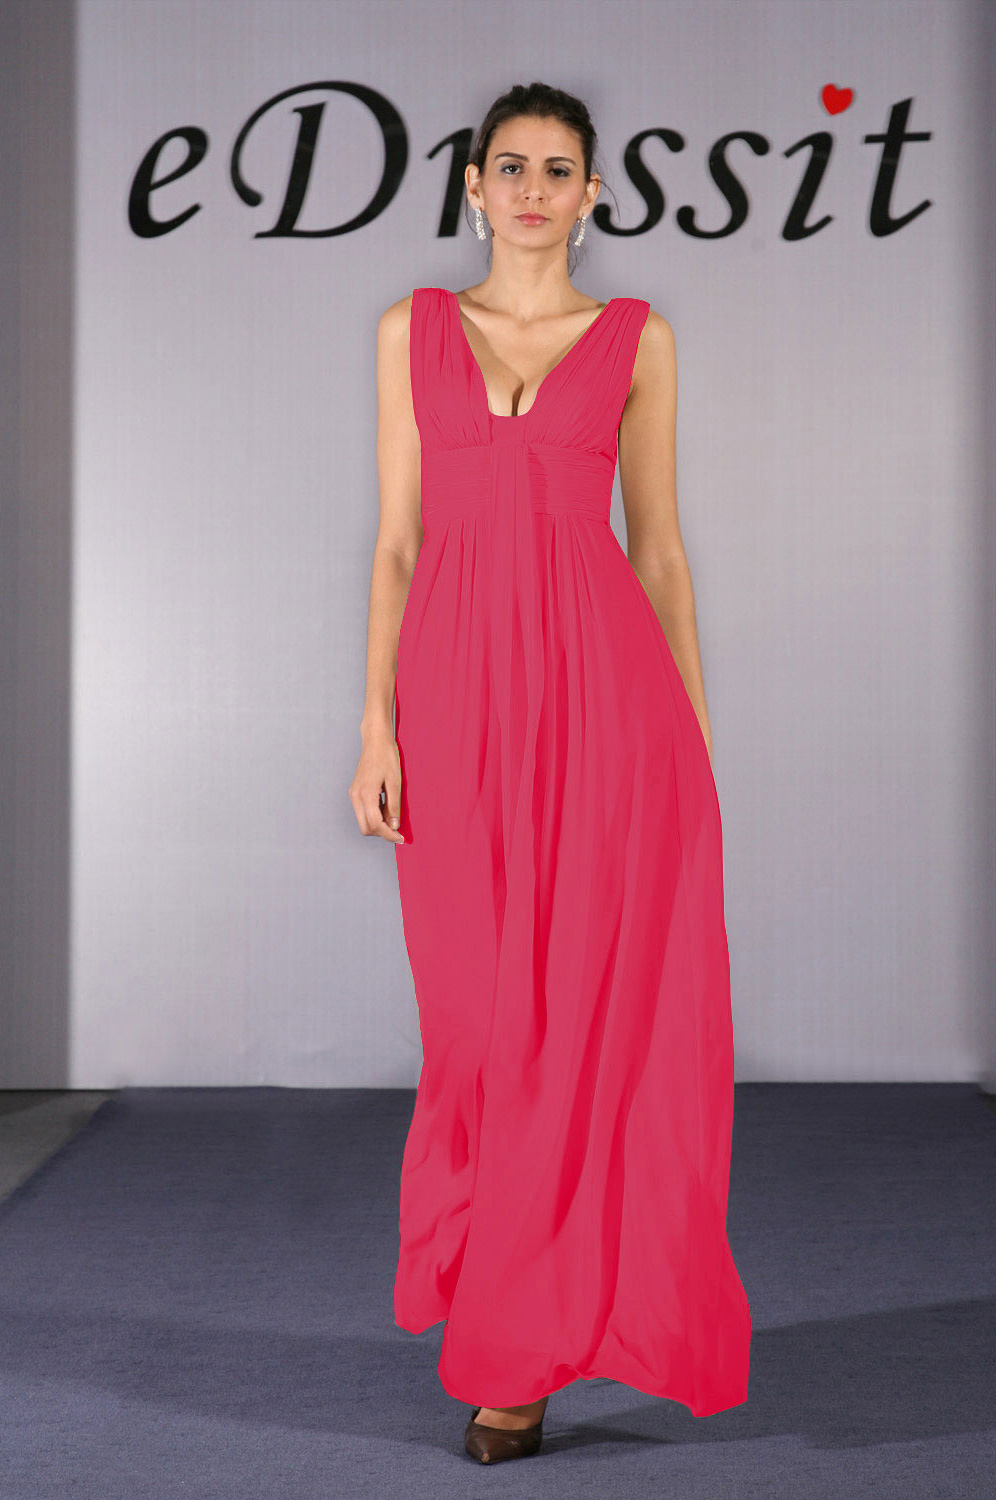 On sale !! eDressit Celebrity Sexy Prom Gown Evening Dress (00090907r)